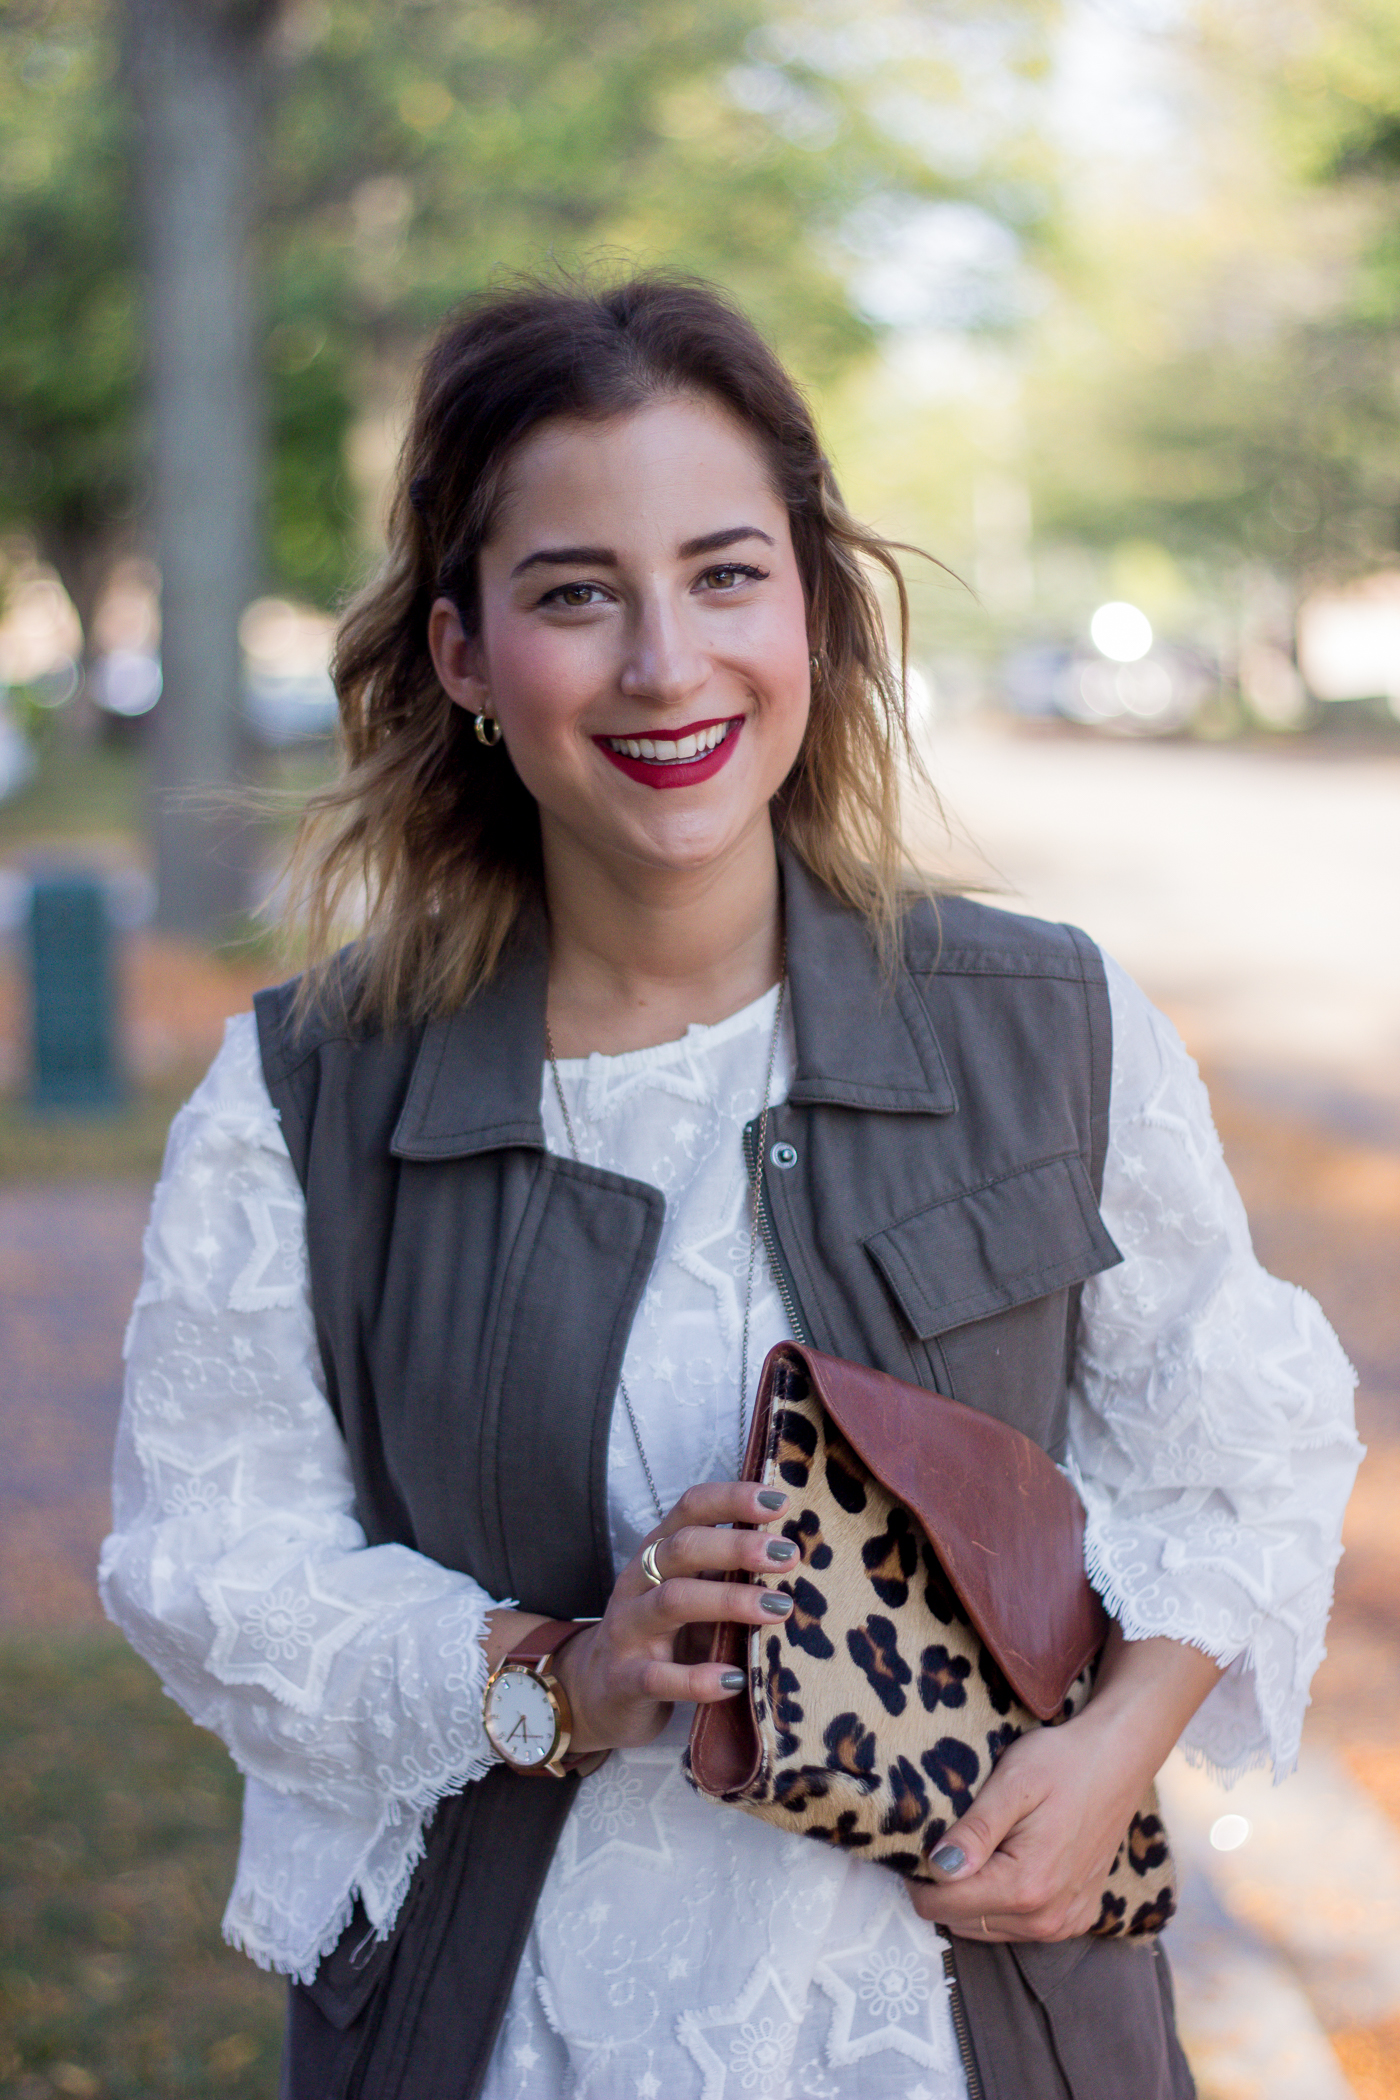 Jackie Goldhar is a petite Toronto-based fashion and lifestyle blogger